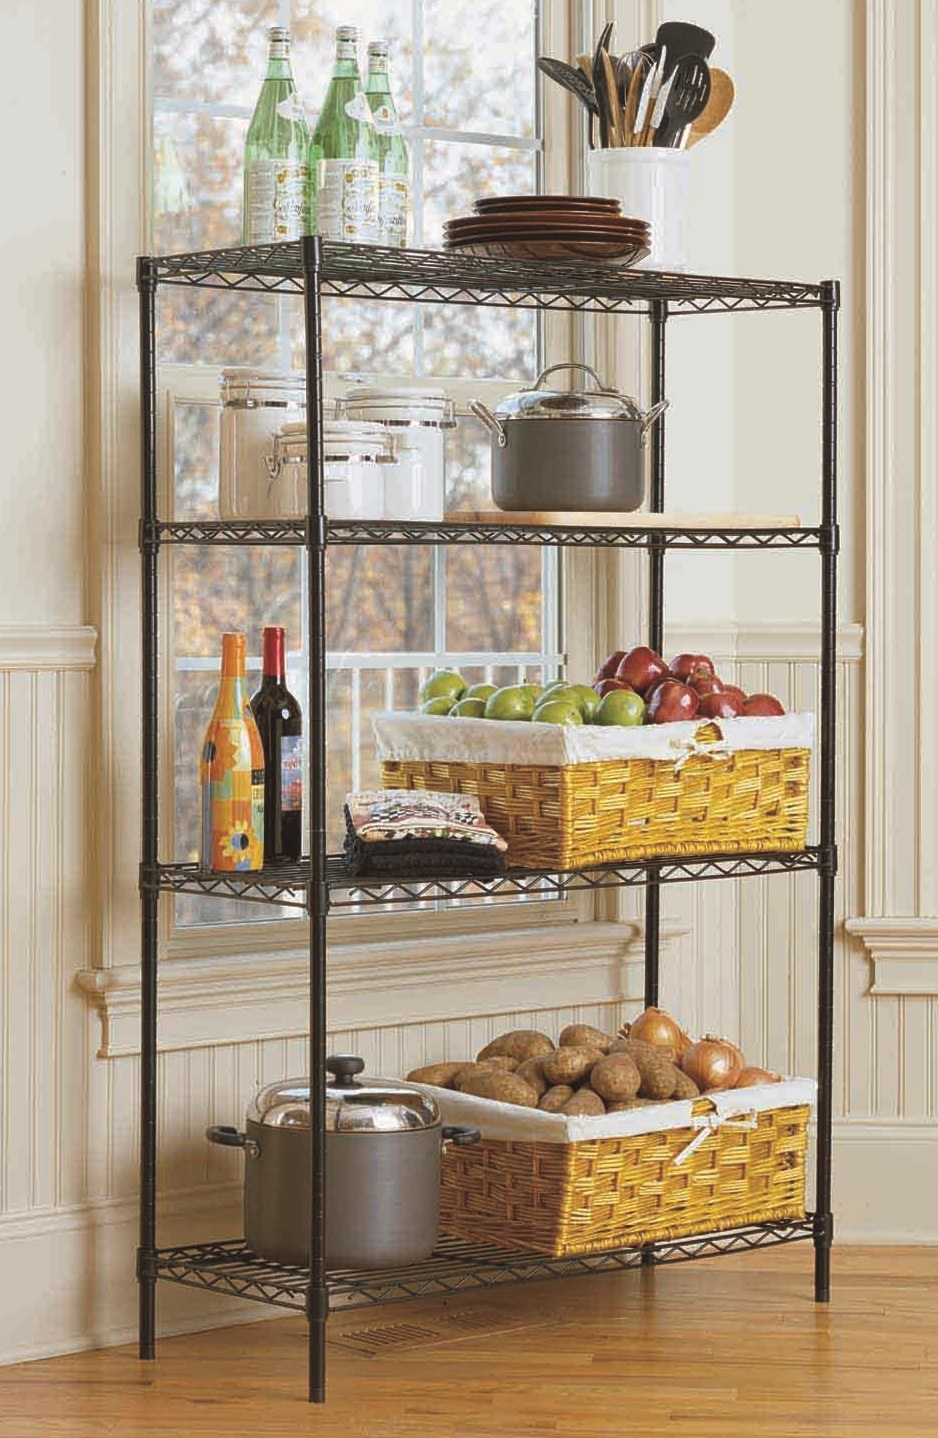 four tier shelving unit in kitchen